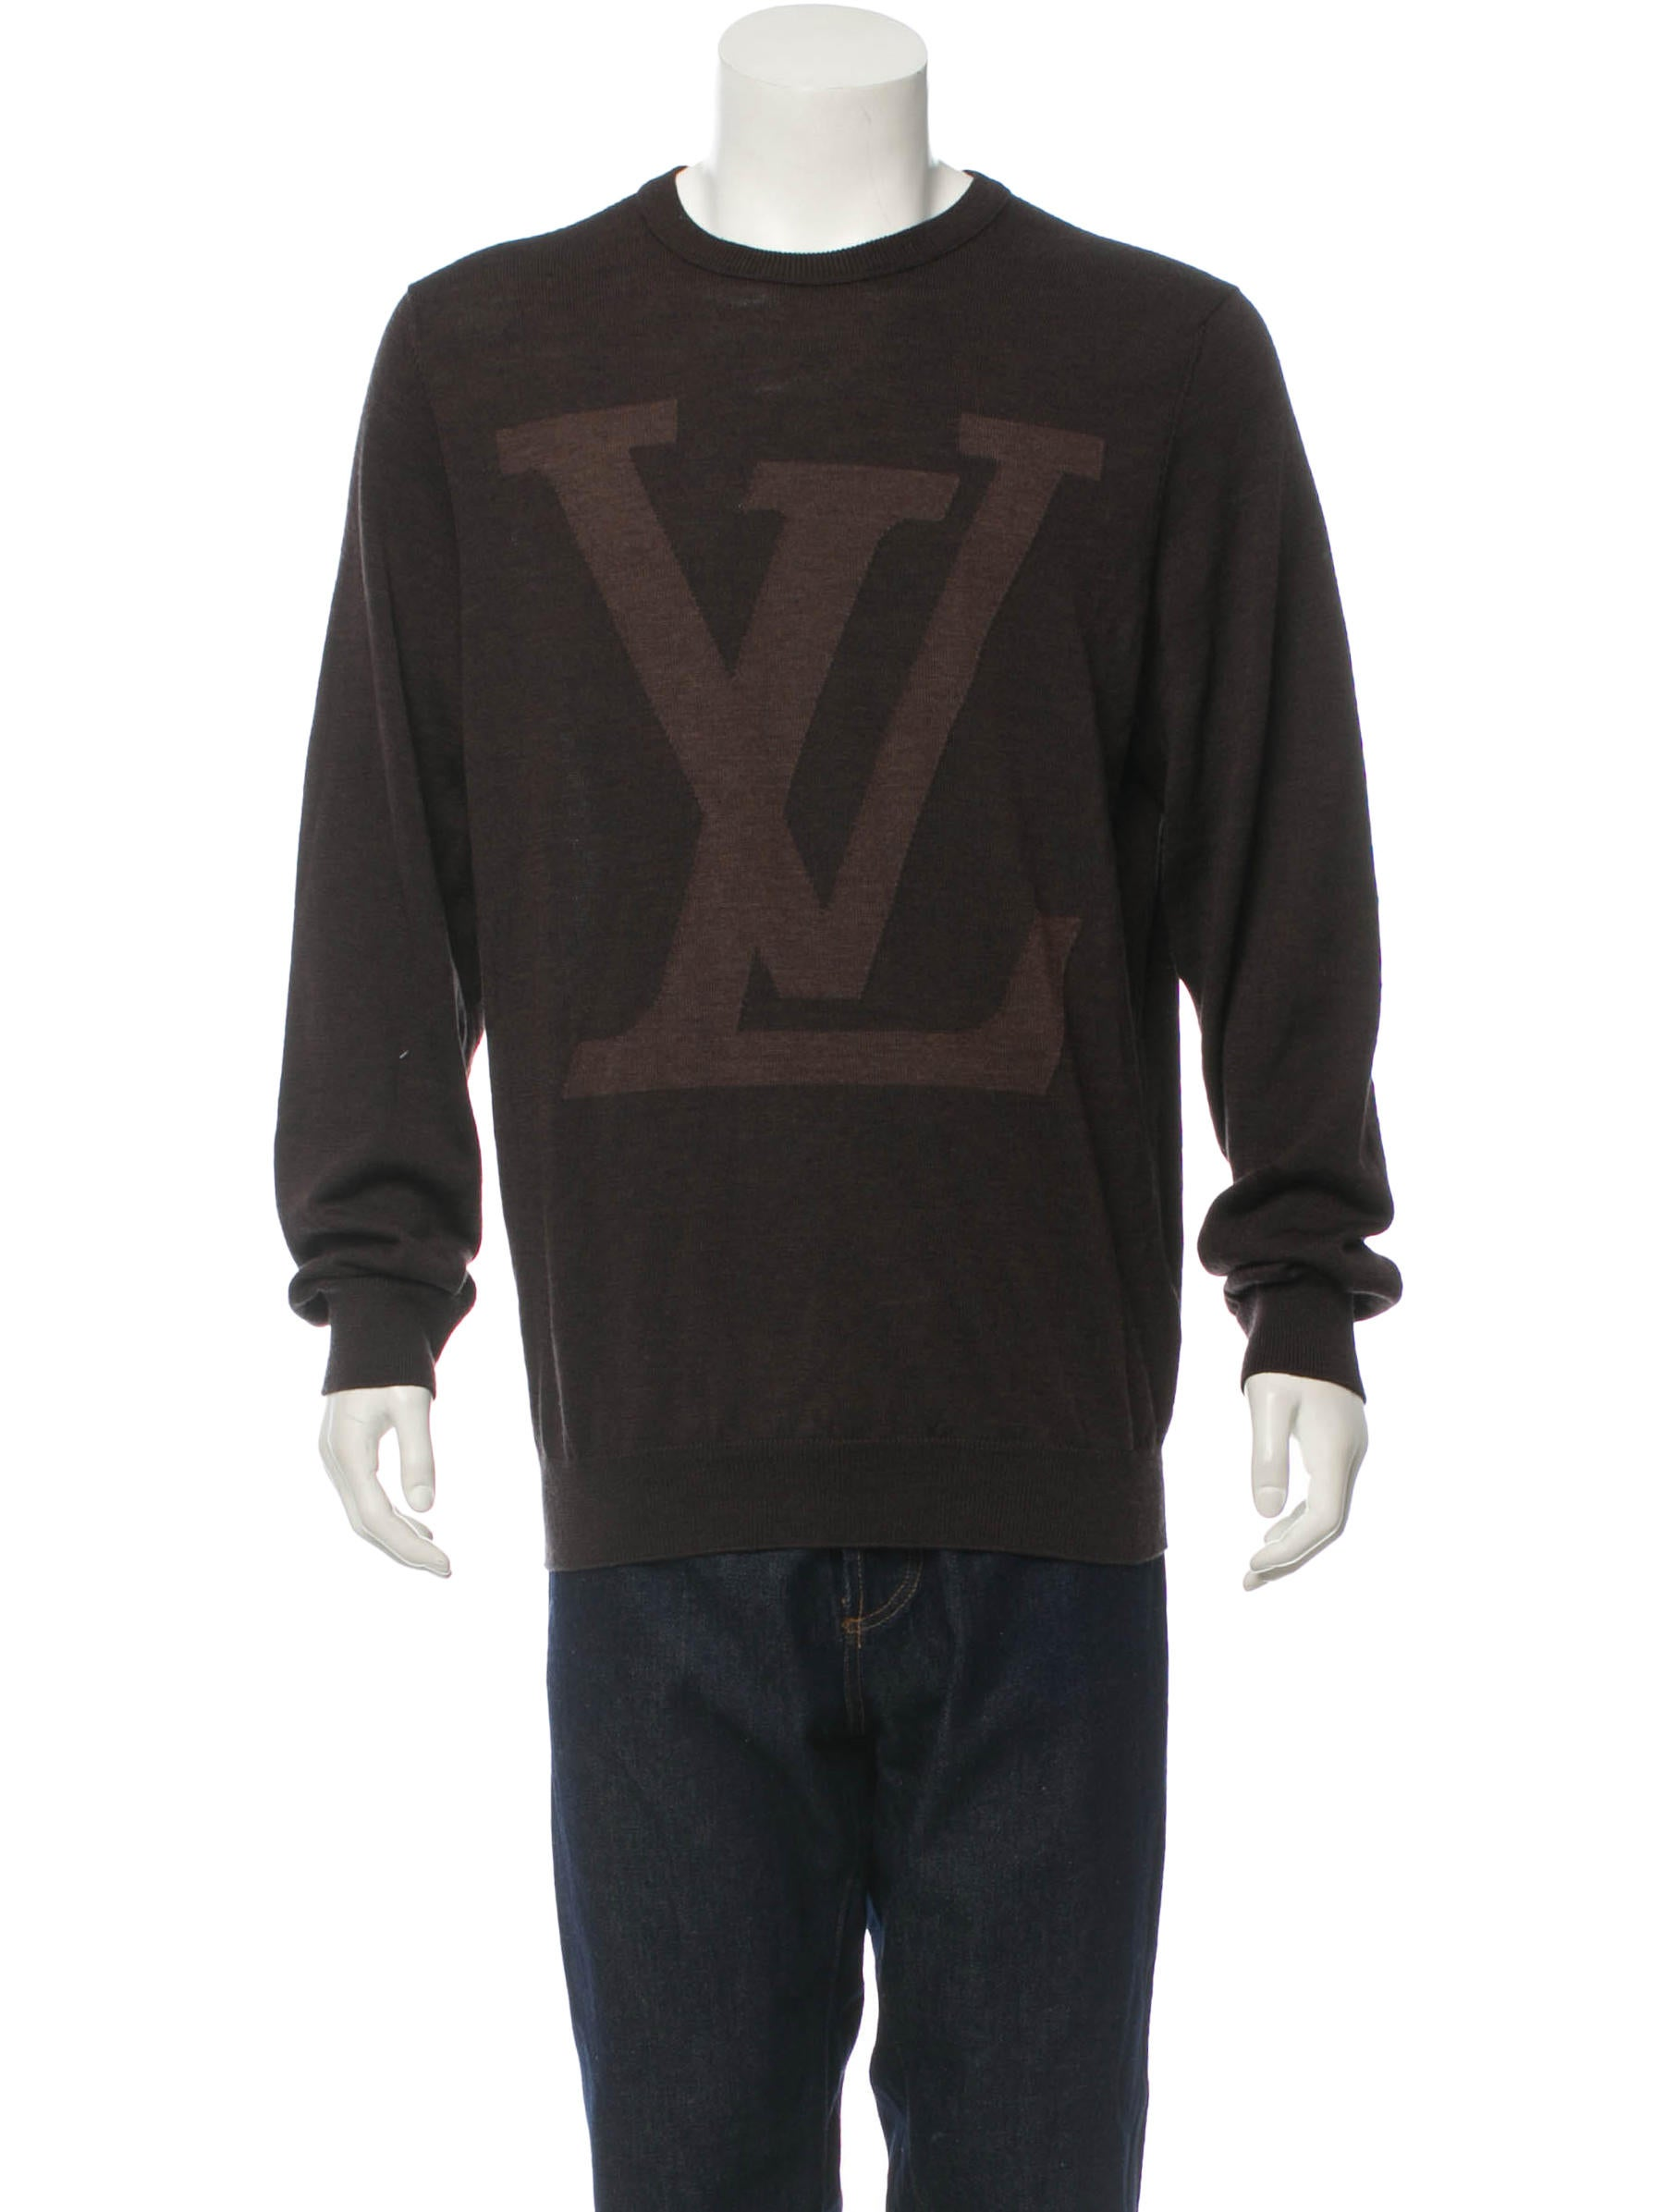 Louis Vuitton Man Sweater 52